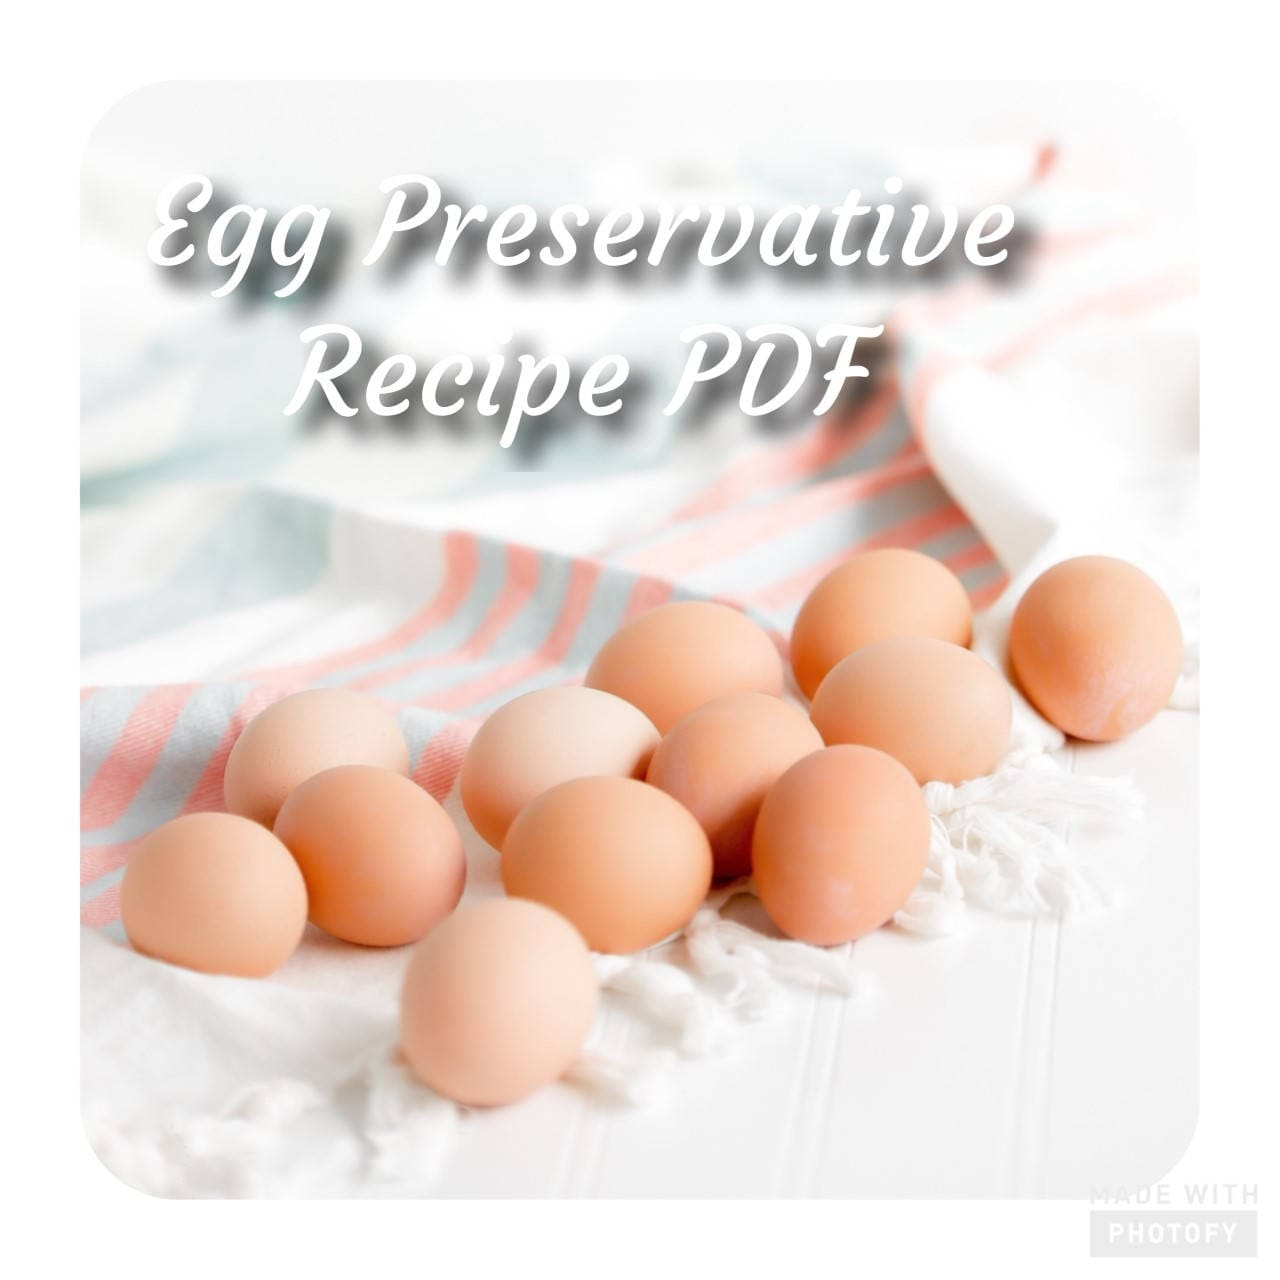 1915 egg preservative recipe pdf file 1915 egg preservative recipe pdf file gallery photo gallery photo forumfinder Images